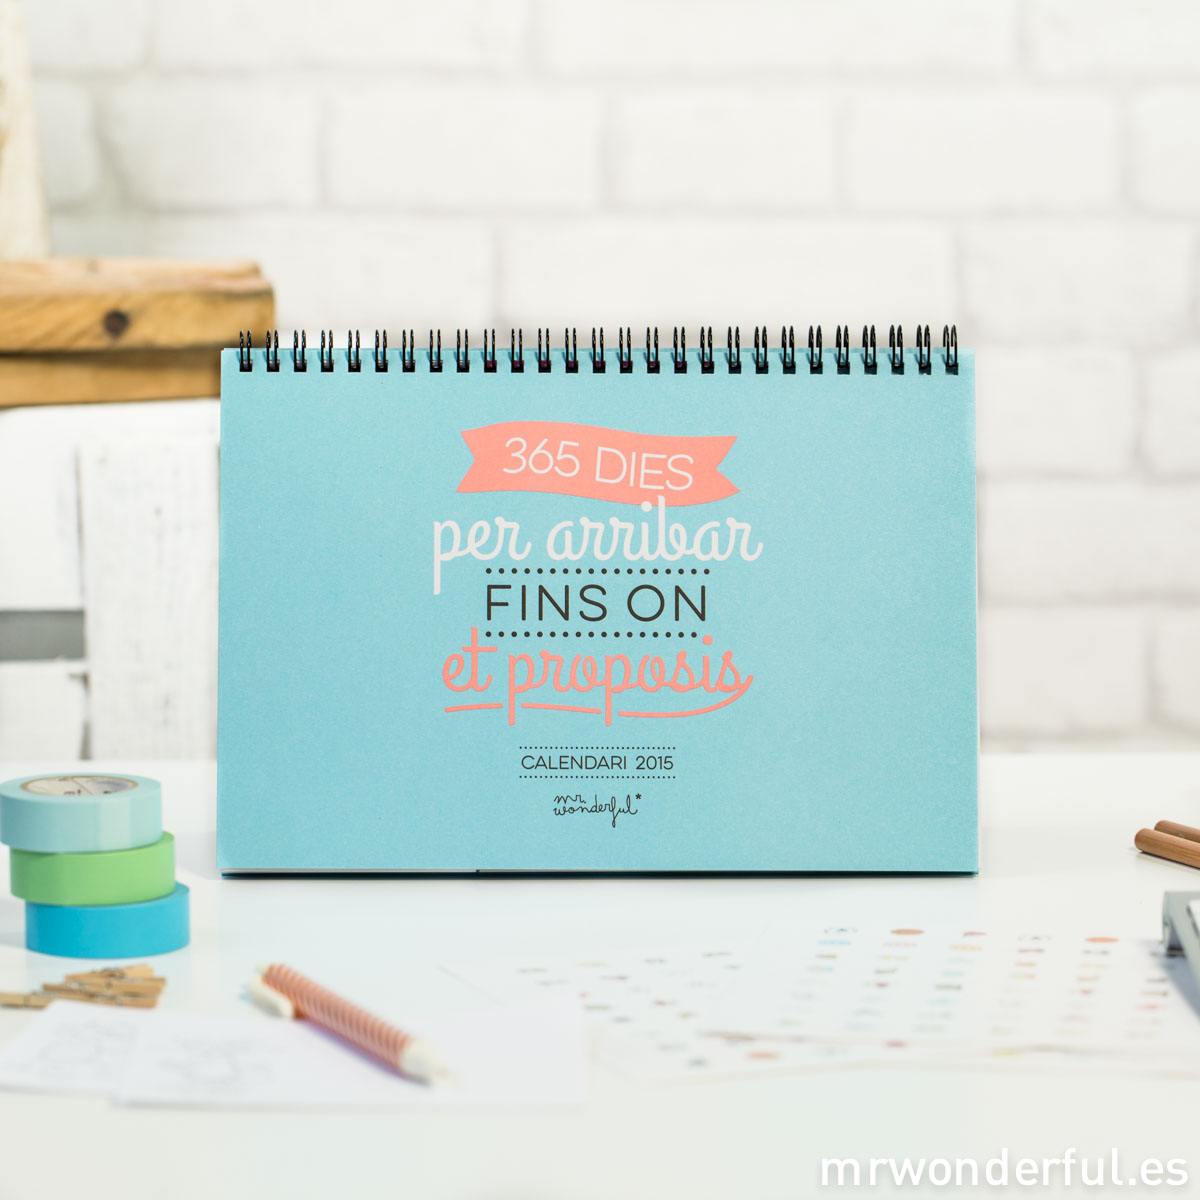 mrwonderful_CAL-WONDER-09_Calendari-2015_365-dies-arribar-on-proposis-3